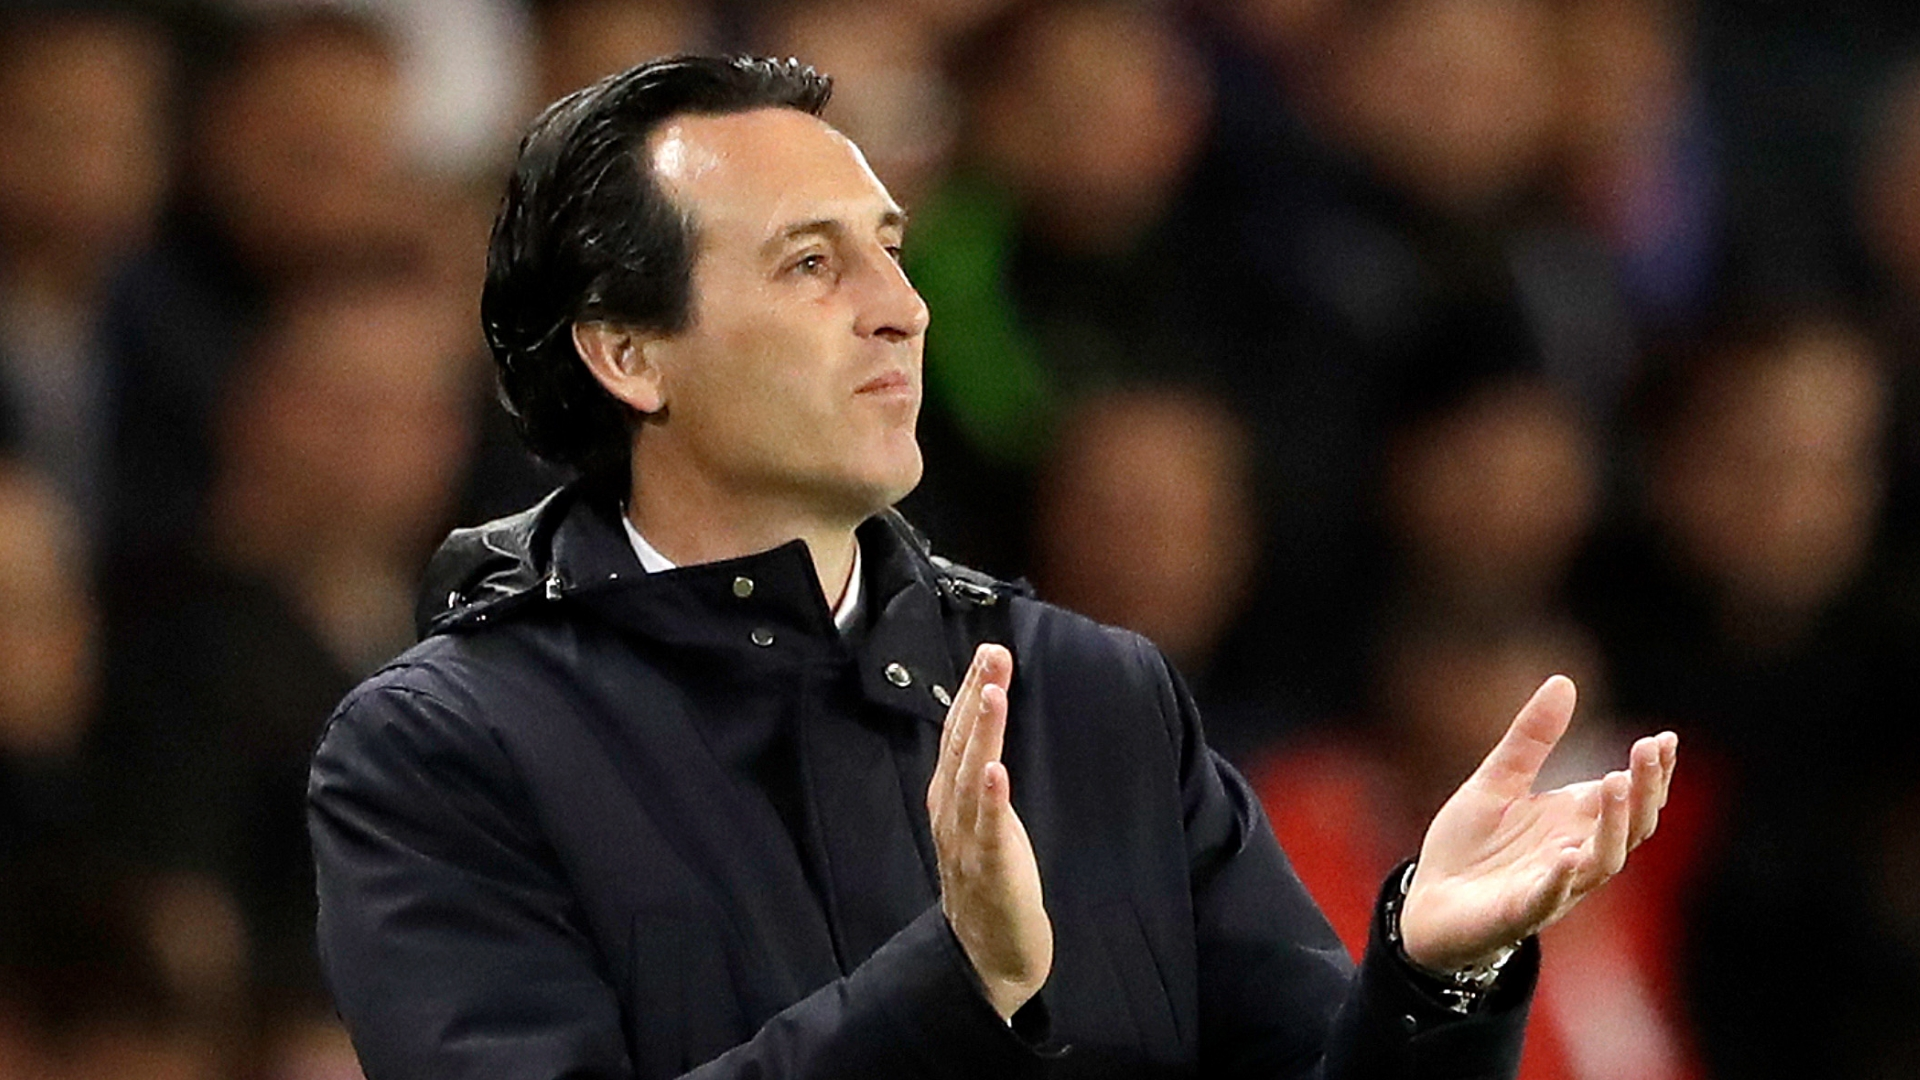 English Premier League Pires: Emery is Arsenal's best signing 15 hours ago